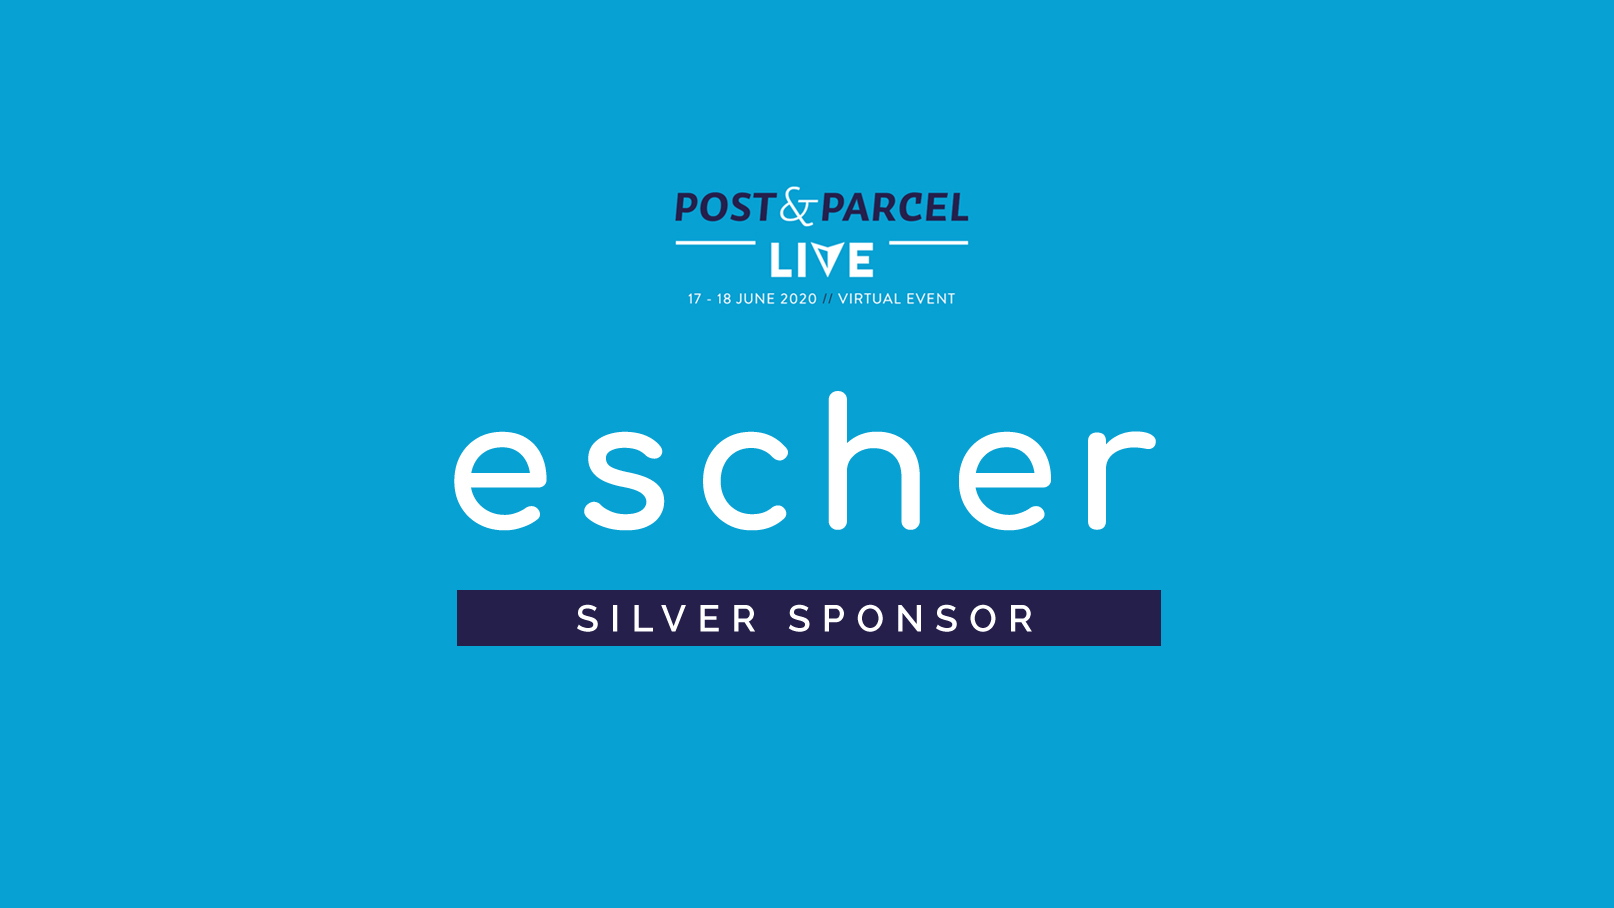 Post and Parcel Live 2020 Escher